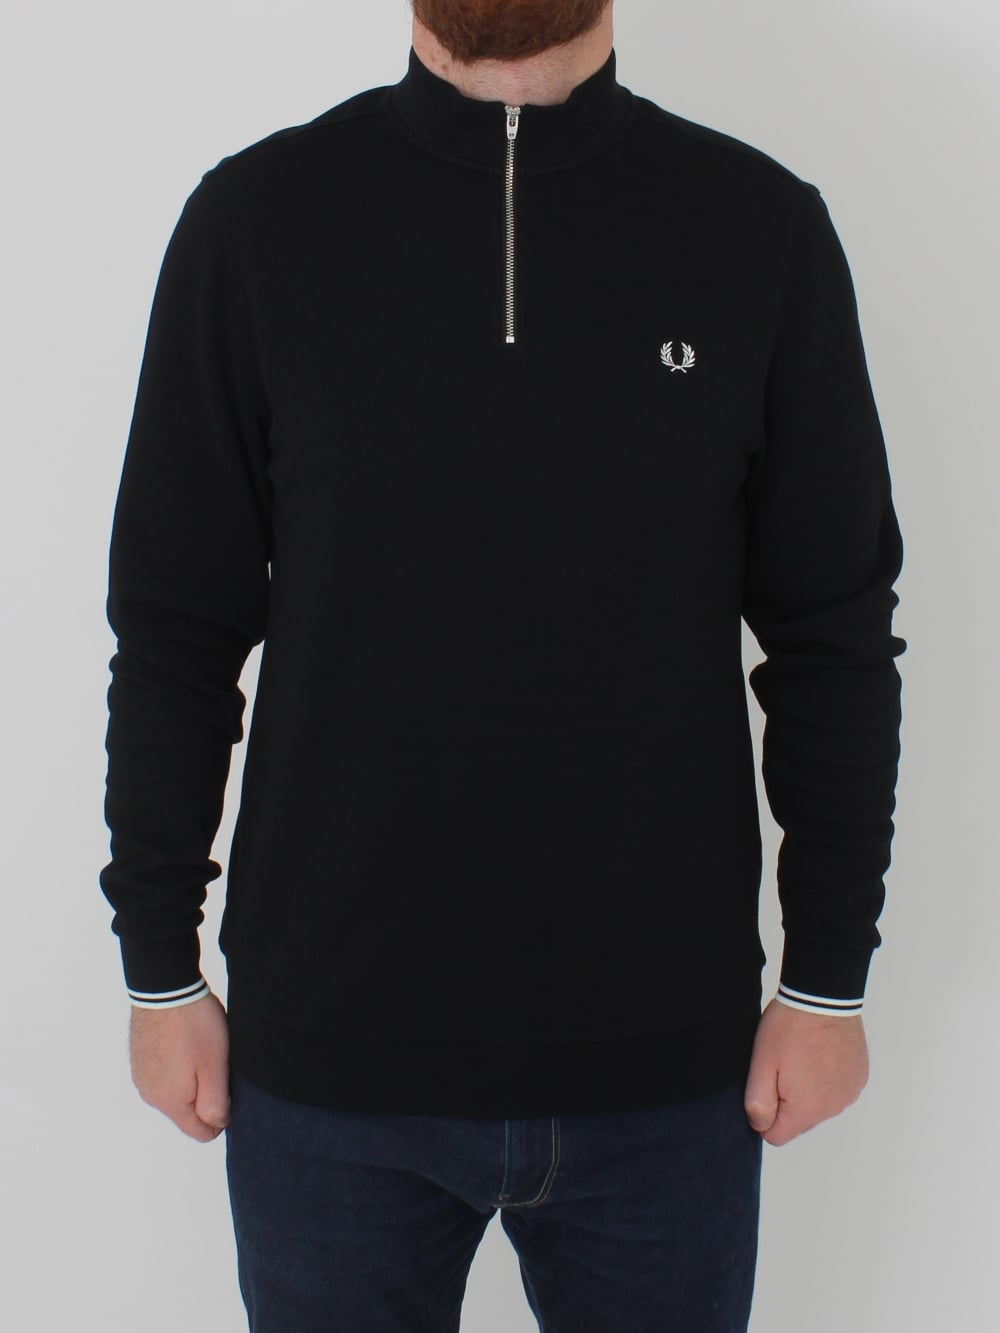 c11bb70f4 Fred Perry Zip Neck Pique Polo in Black - Northern Threads